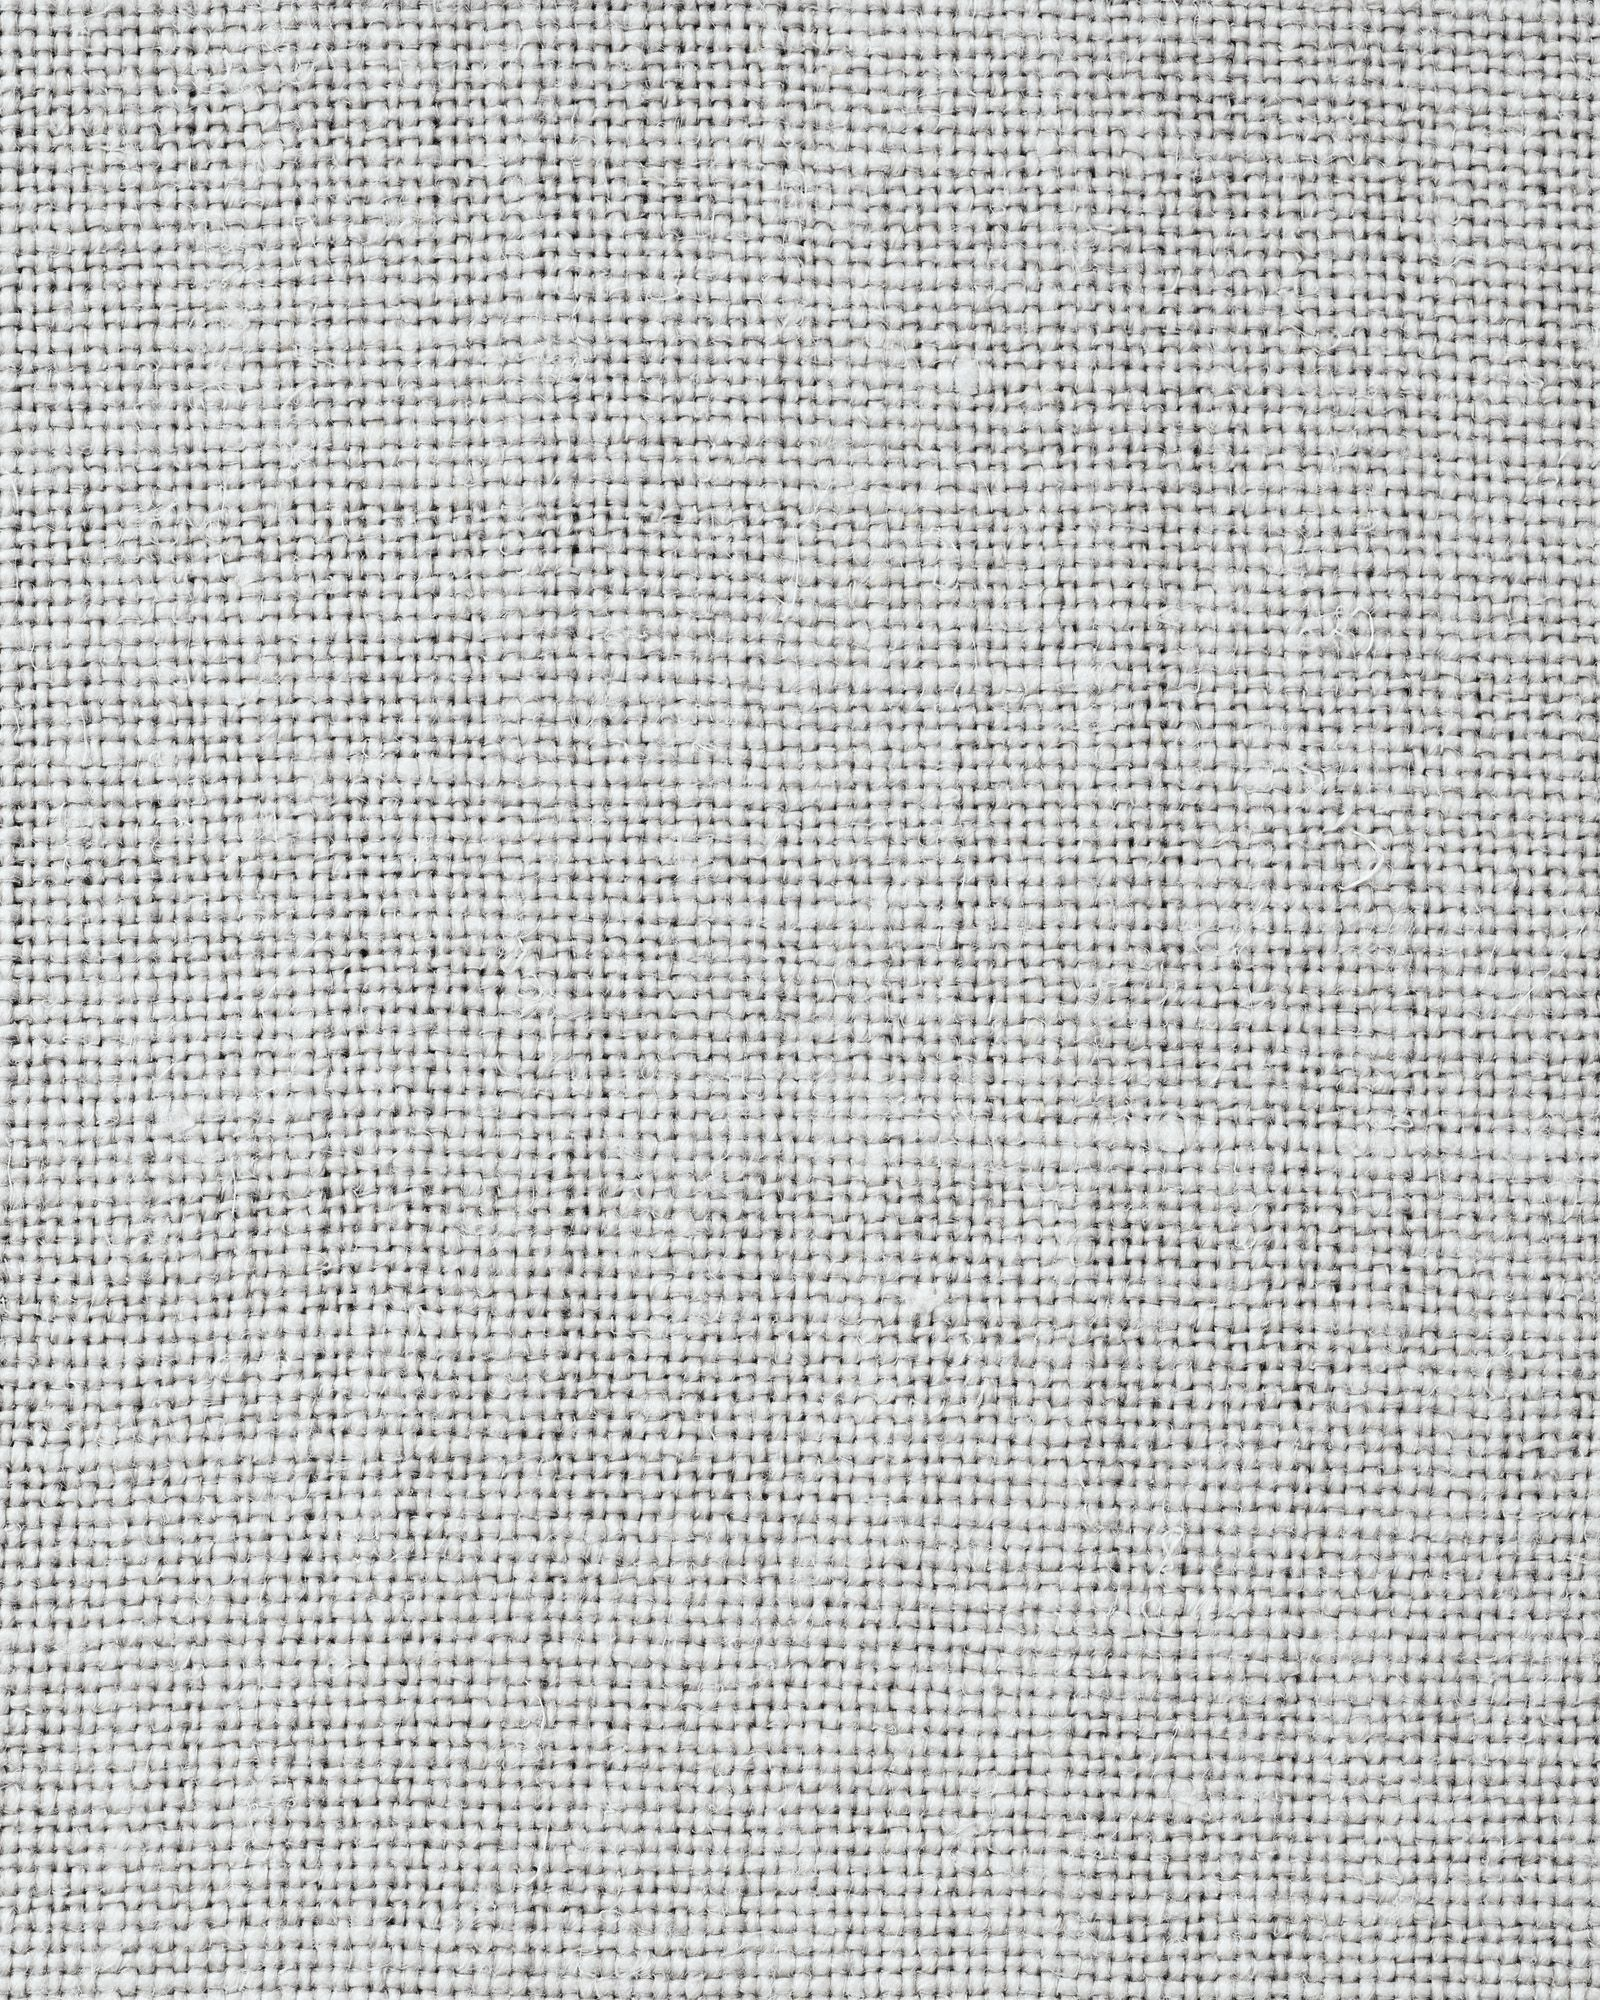 Washed Linen FabricWashed Linen Fabric | Master bedroom | Pinterest ... for Linen Fabric Textures  257ylc